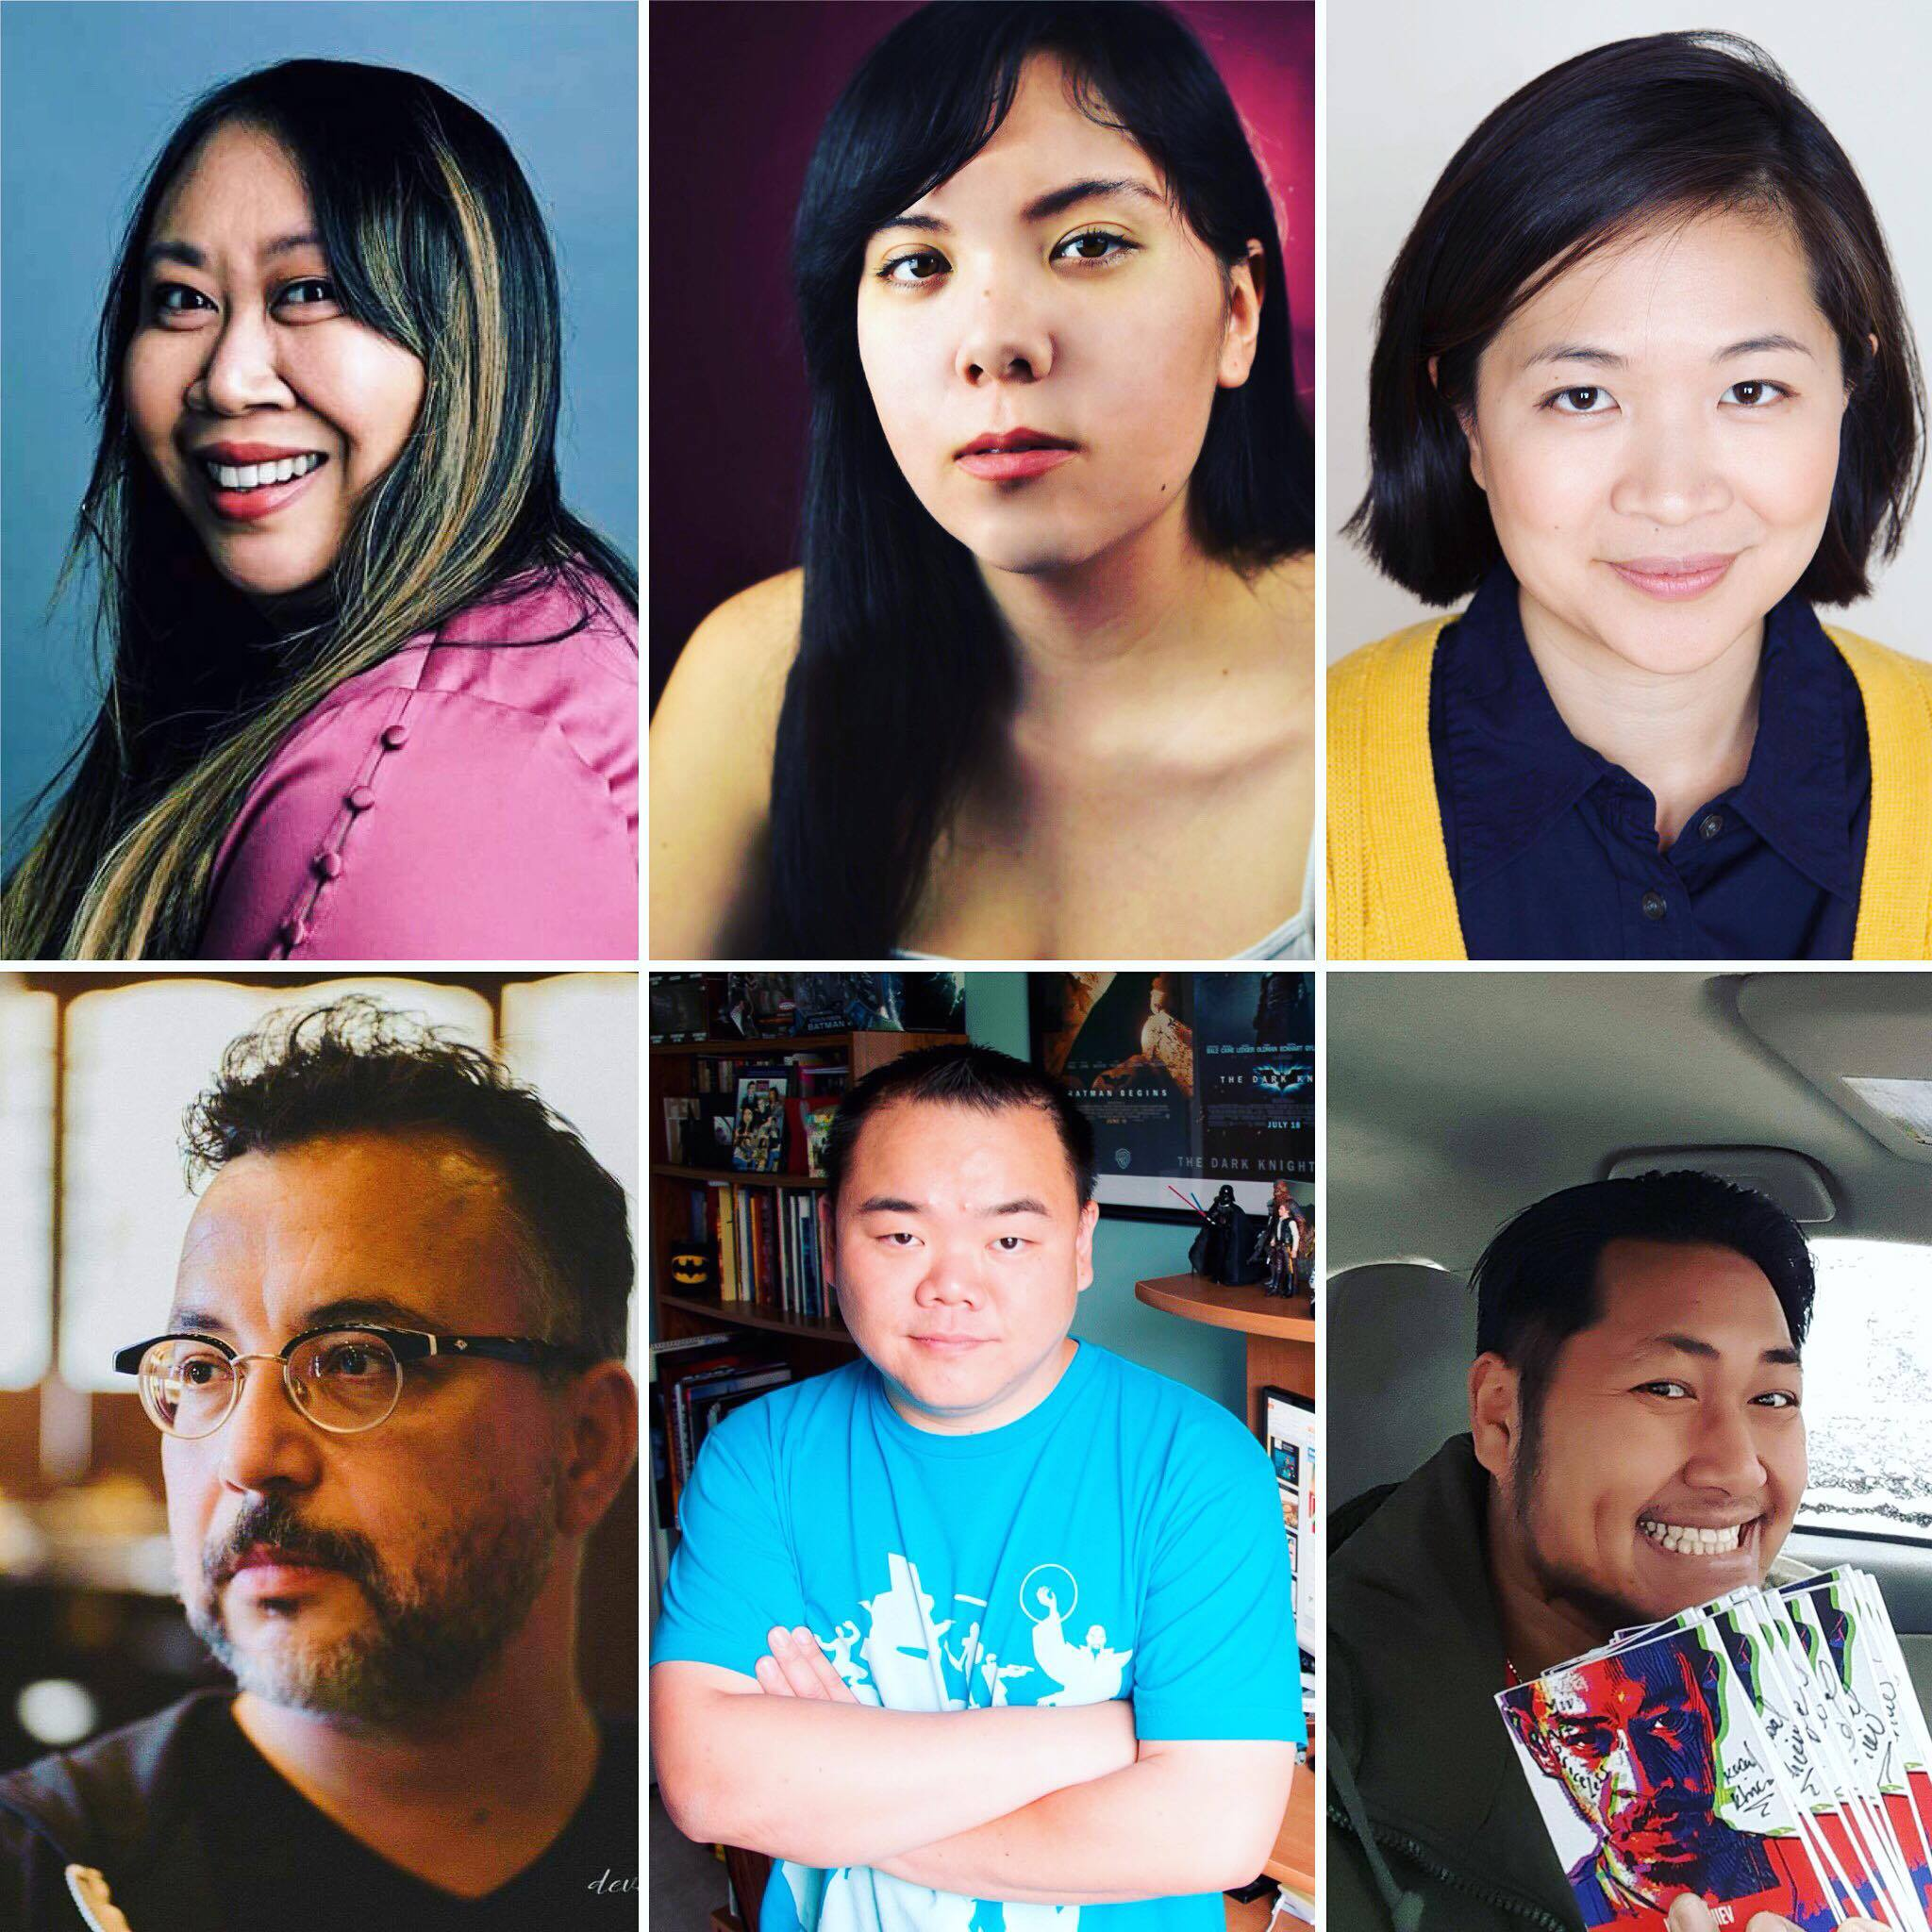 Our storytellers:  Davine Ker, Elizabeth Ung, Kim Sou, Kevin Griffin Moreno, and Chann Sou.